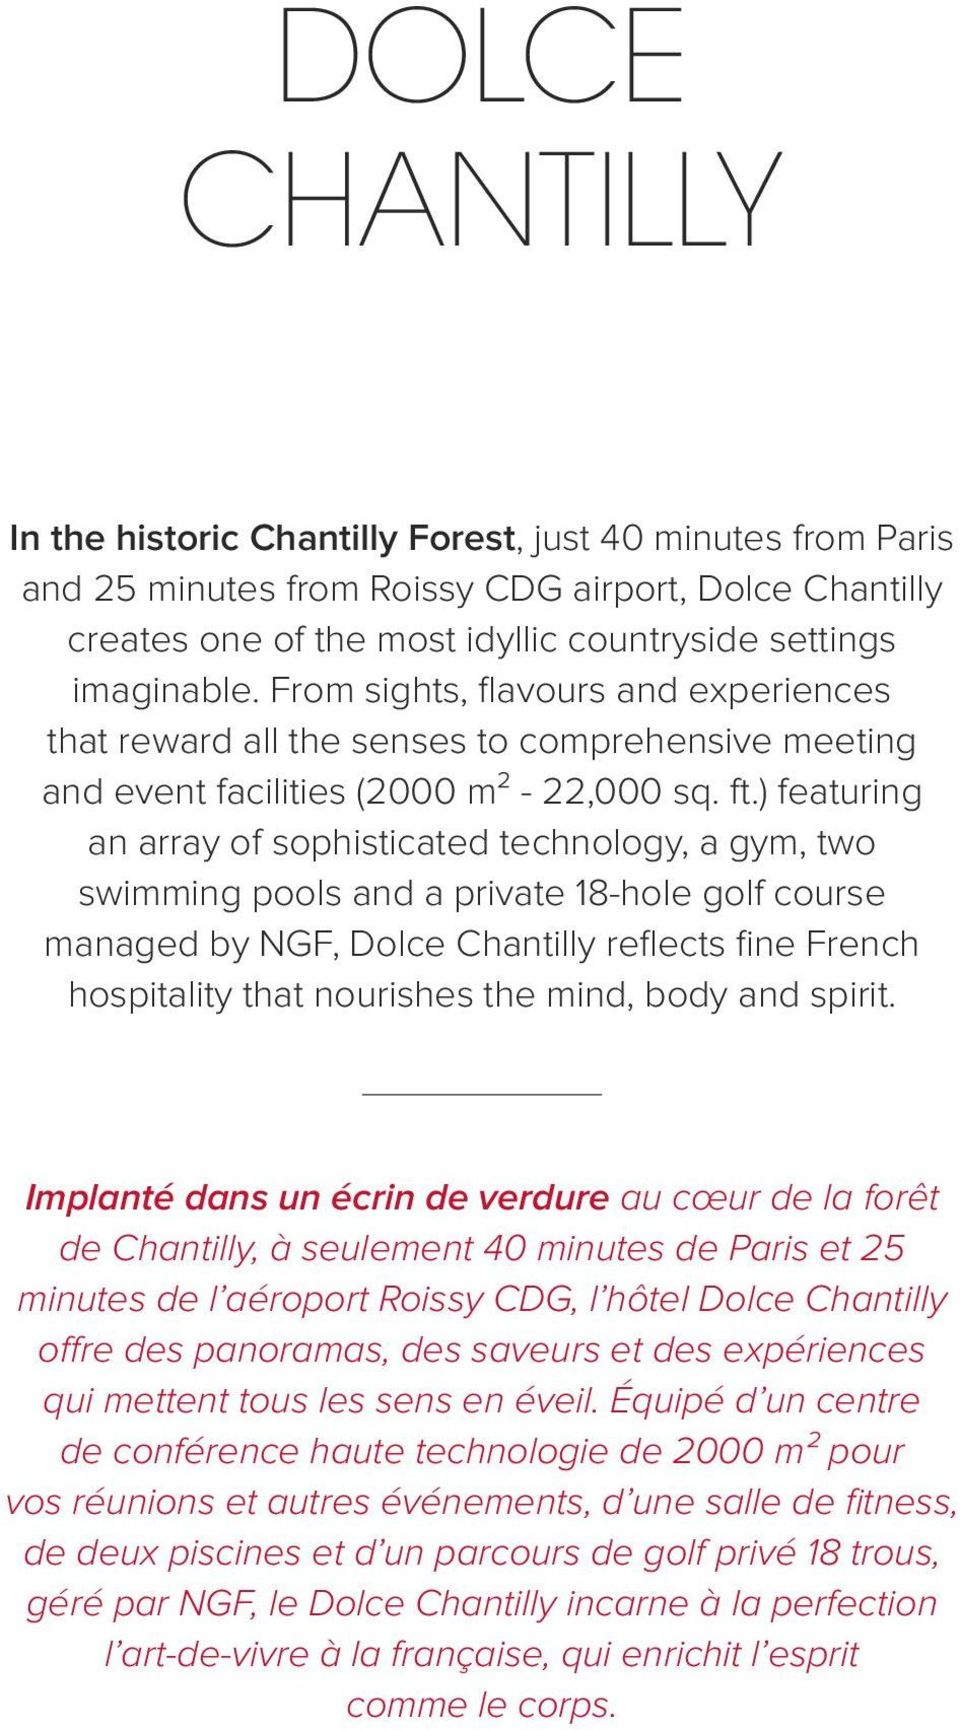 ) featuring an array of sophisticated technology, a gym, two swimming pools and a private 18-hole golf course managed by NGF, Dolce Chantilly reflects fine French hospitality that nourishes the mind,